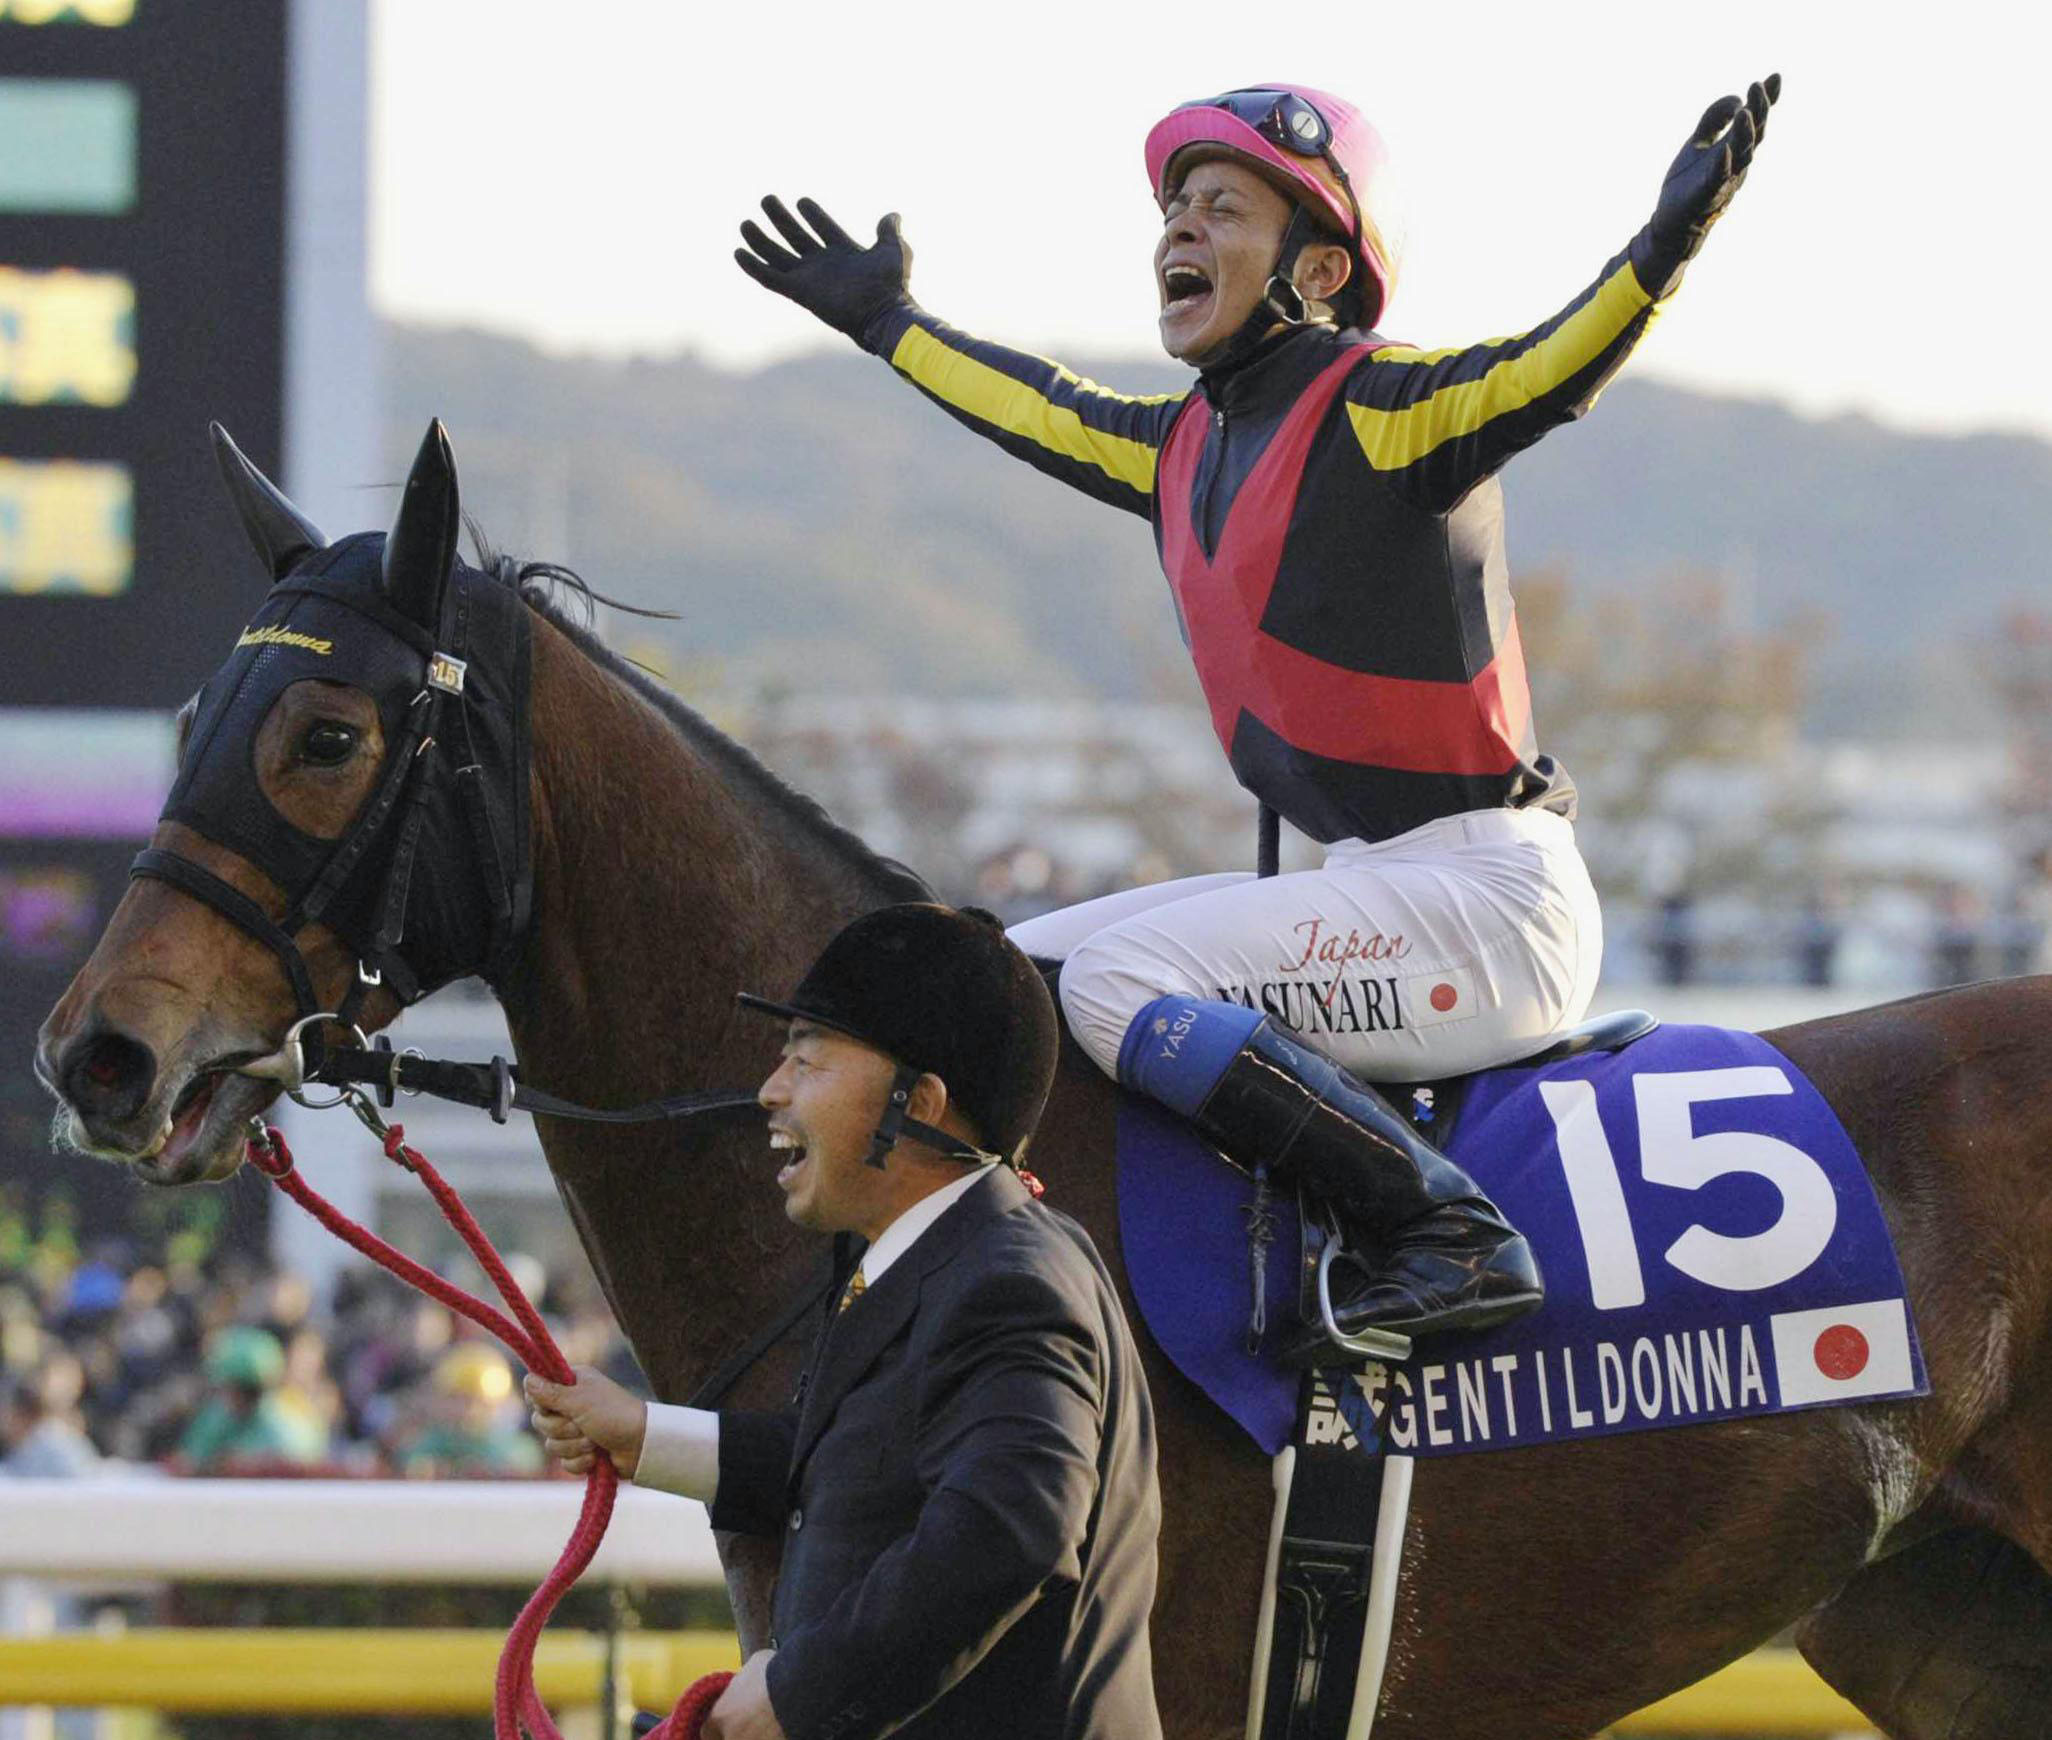 First class: Jockey Yasunari Iwata celebrates winning the Japan Cup atop Gentildonna at Tokyo Racecourse on Sunday. | KYODO